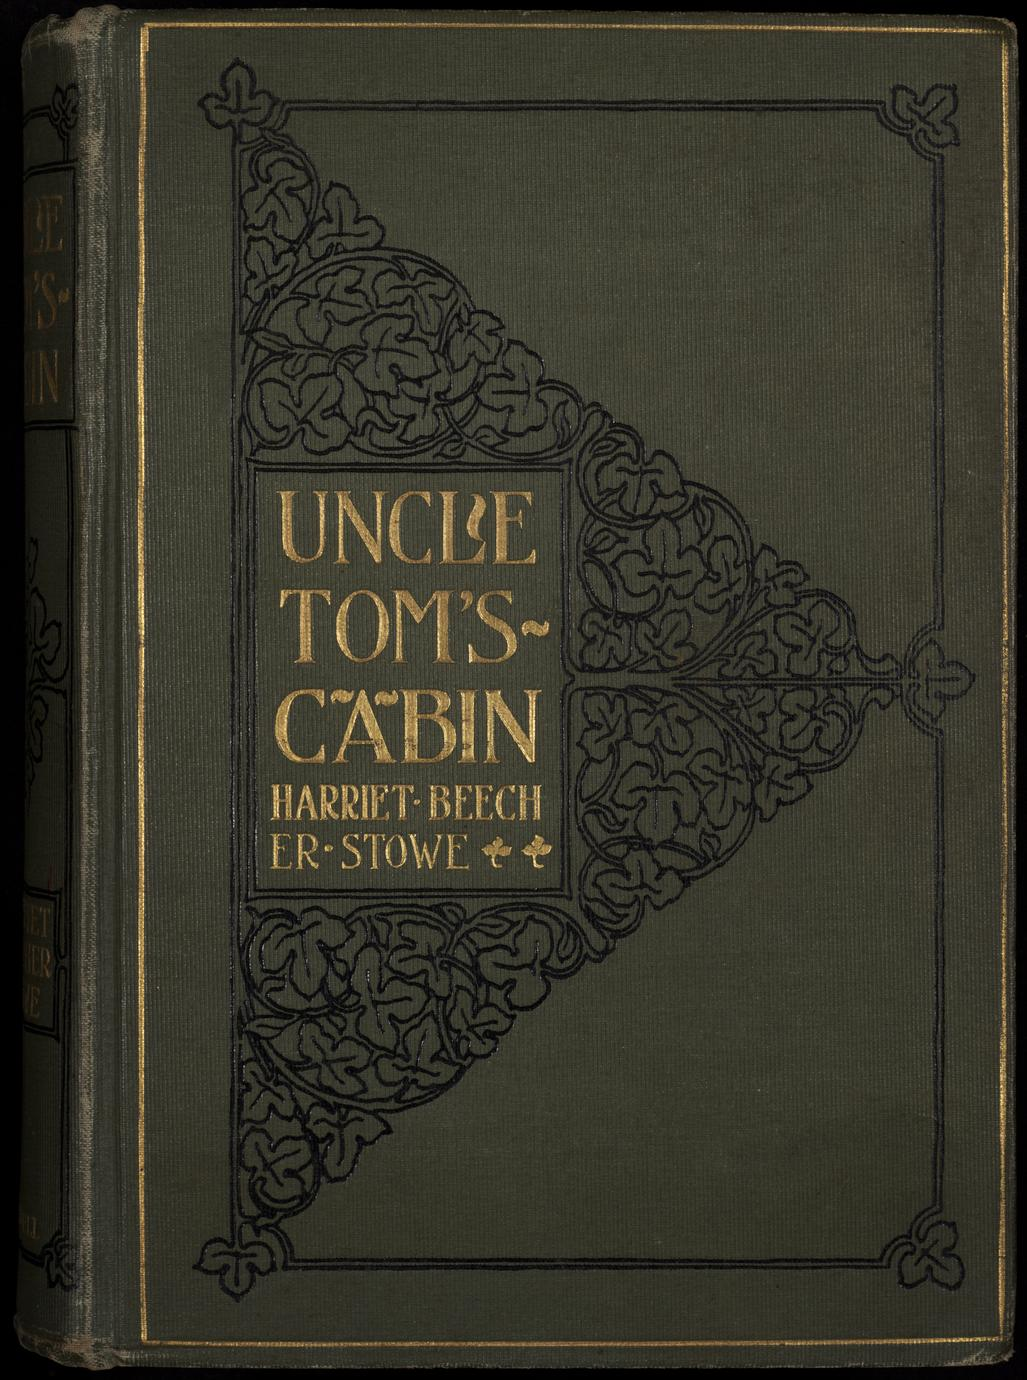 Uncle Tom's cabin ; or, Life among the lowly (1 of 2)